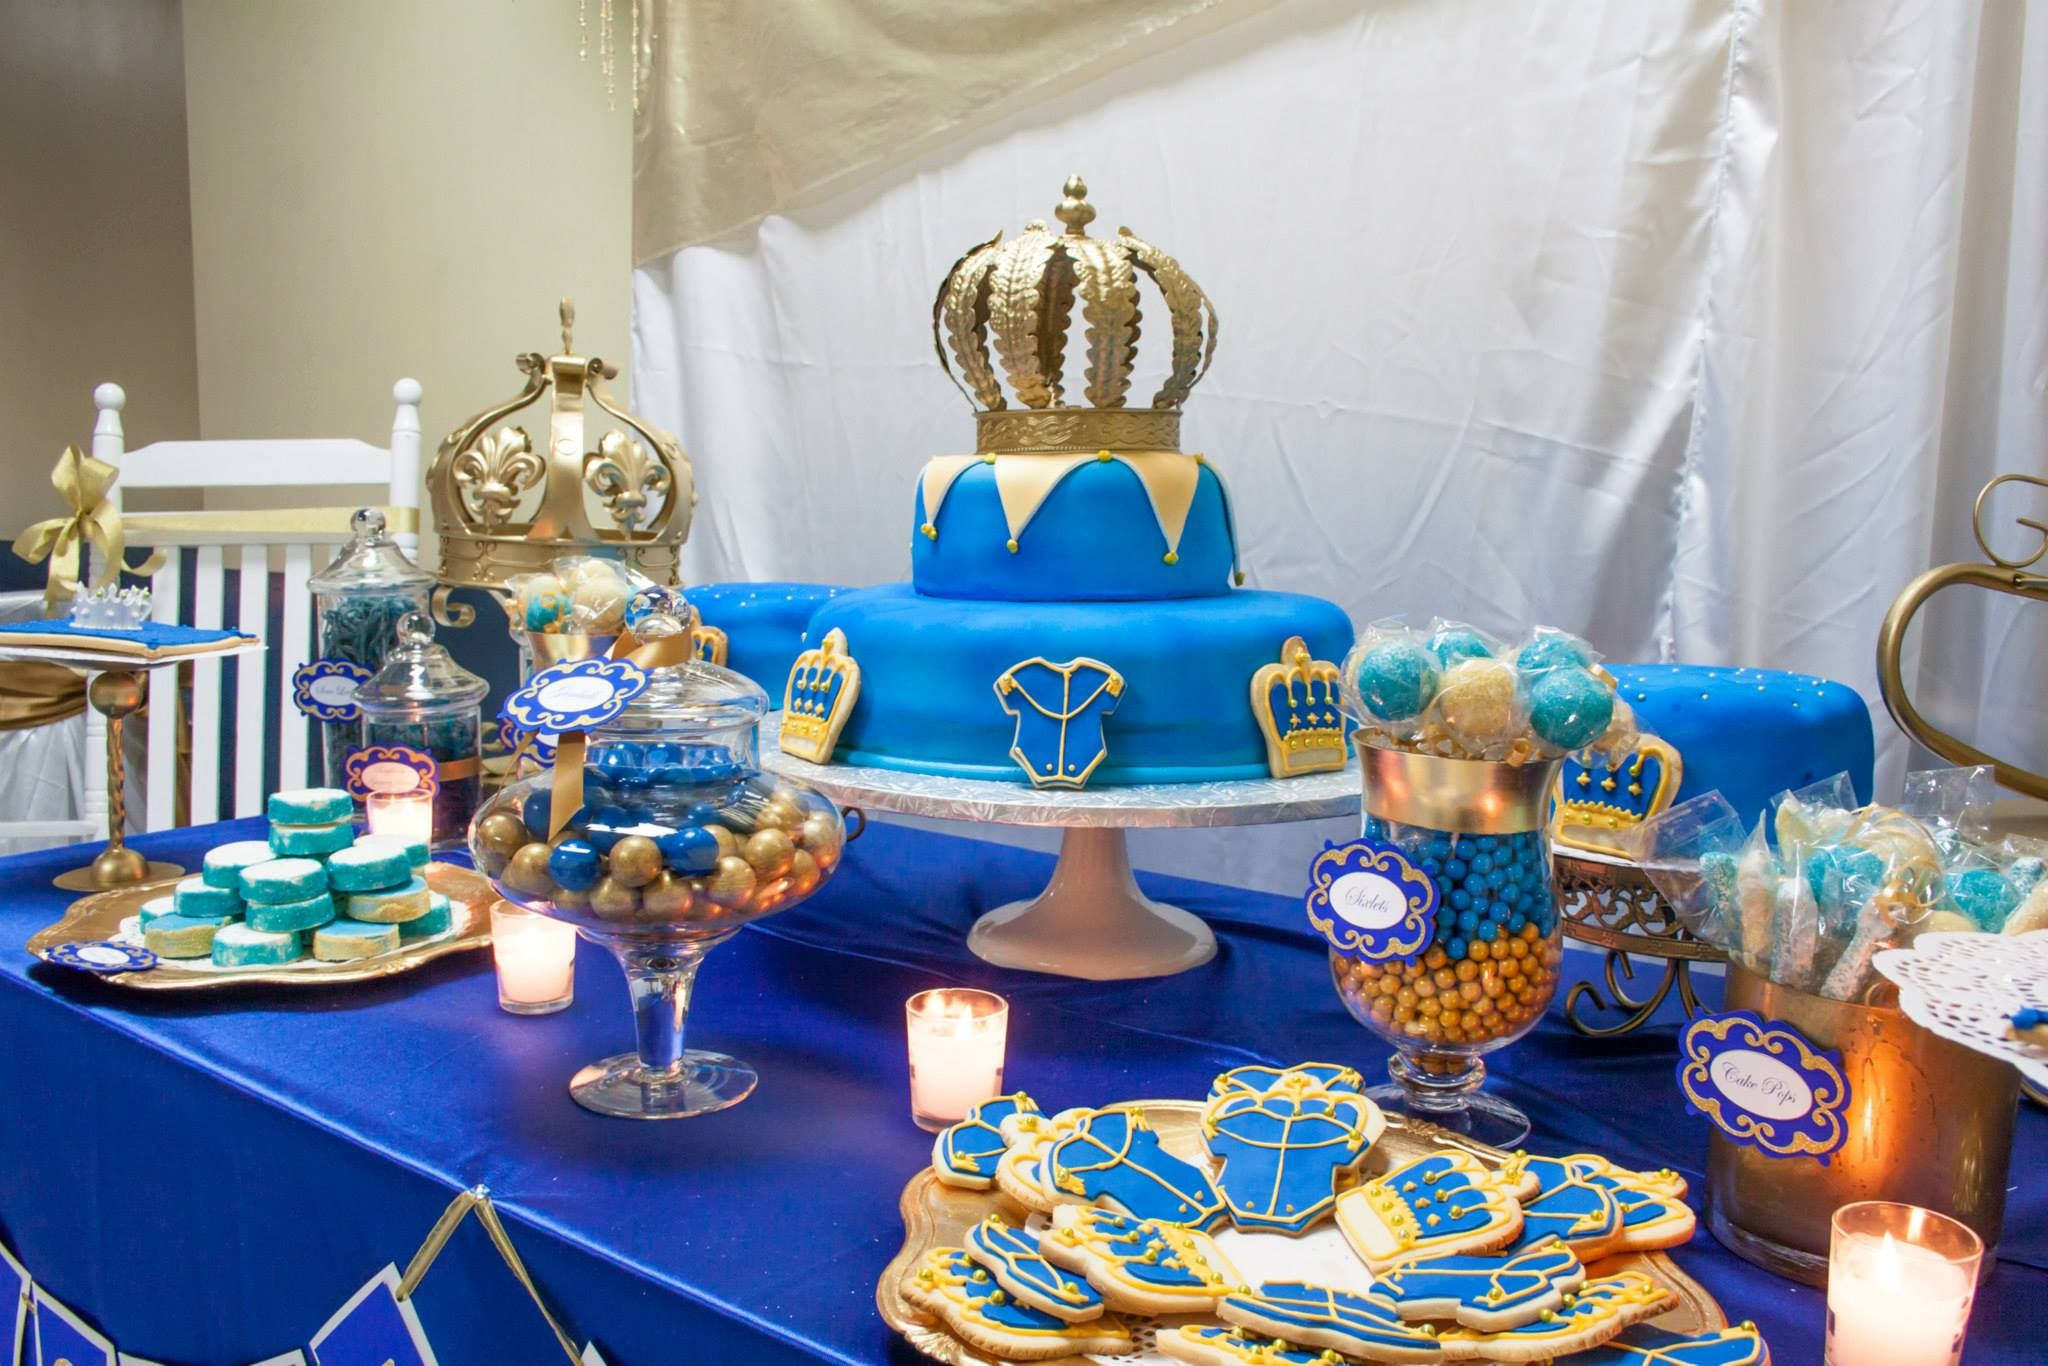 Baby Shower Crown Centerpieces | 1400371_757778367572505_1293030801_o